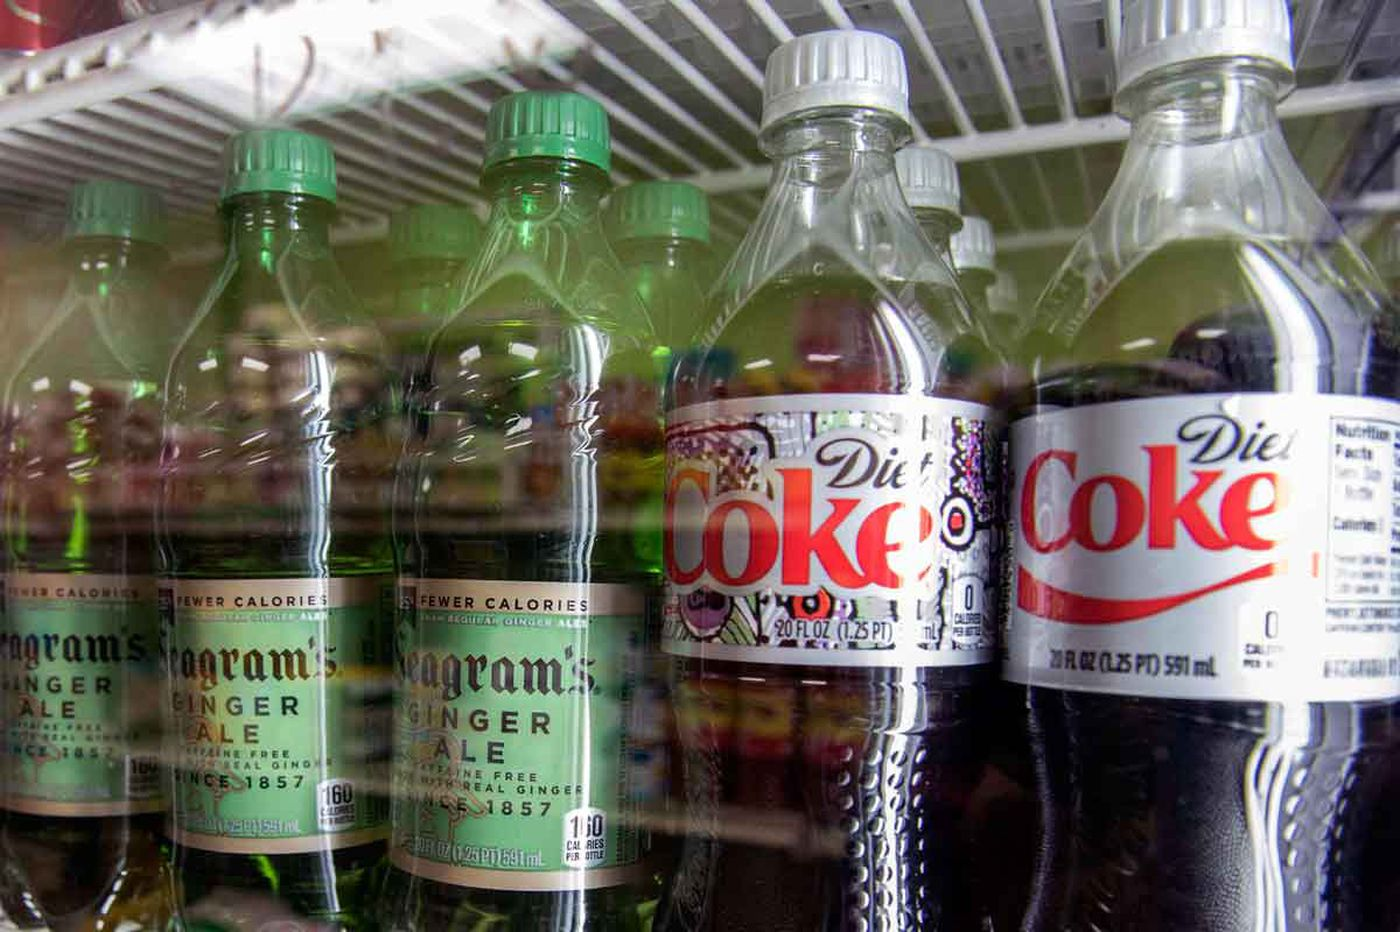 Commentary: With soda tax, Philly pioneers healthier path